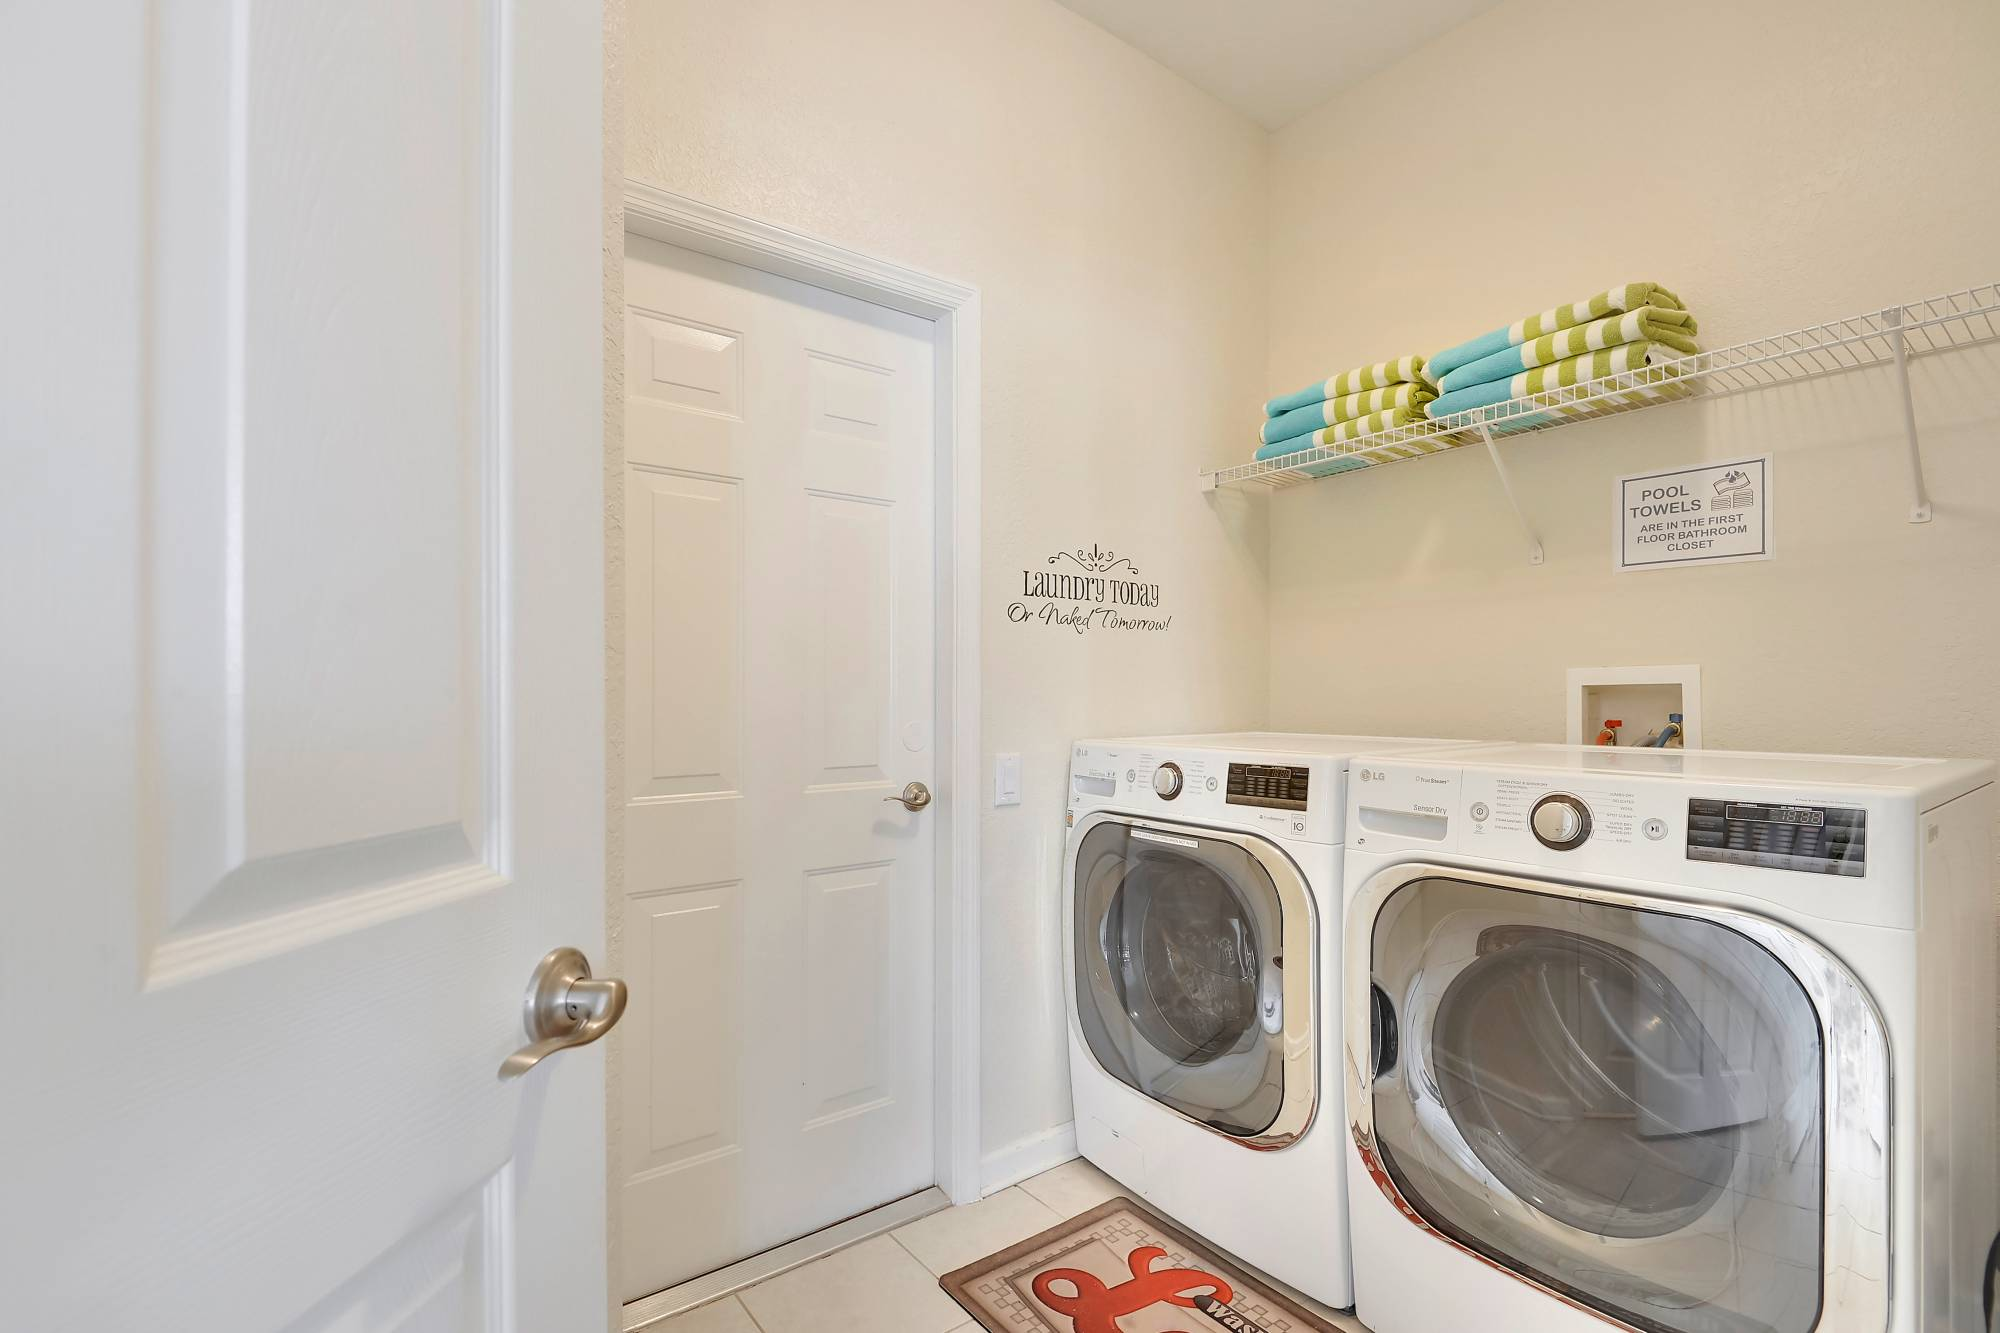 Villa By The Castle is a Top Rated Kissimmee Vacation Rental Home With A Separate Laundry Room And Huge Washer and Dryer